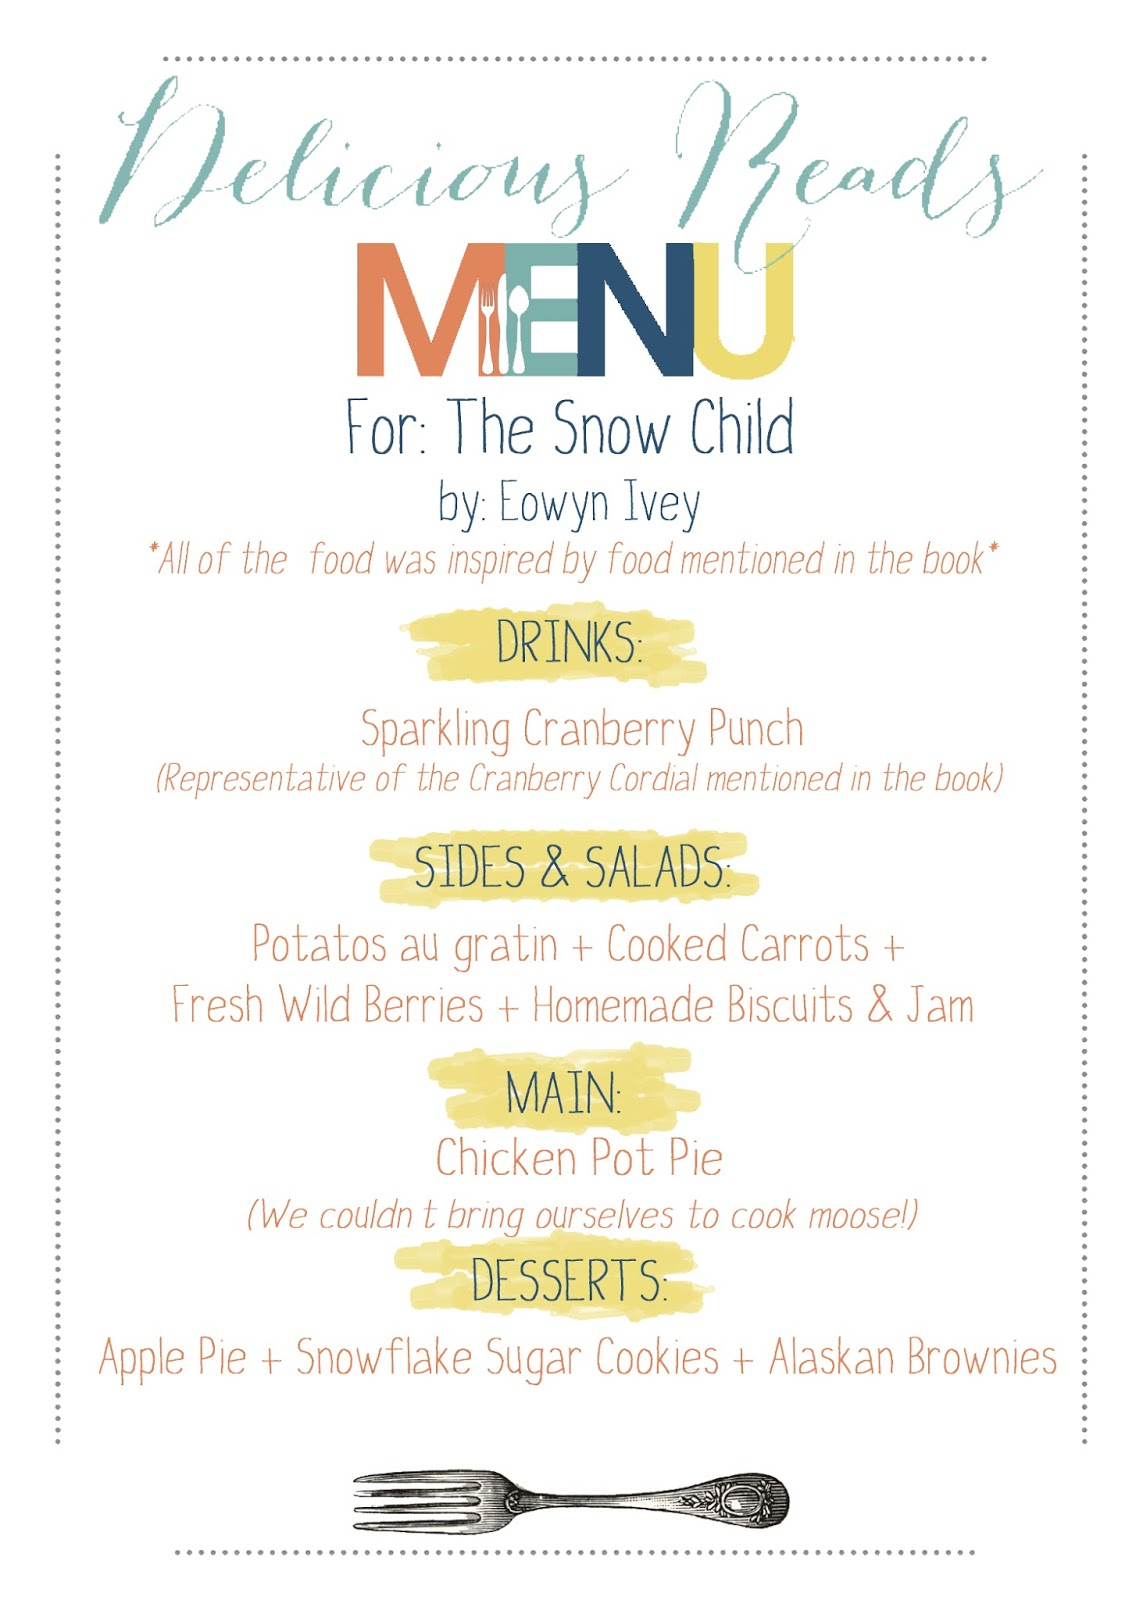 menu for The Snow Child book